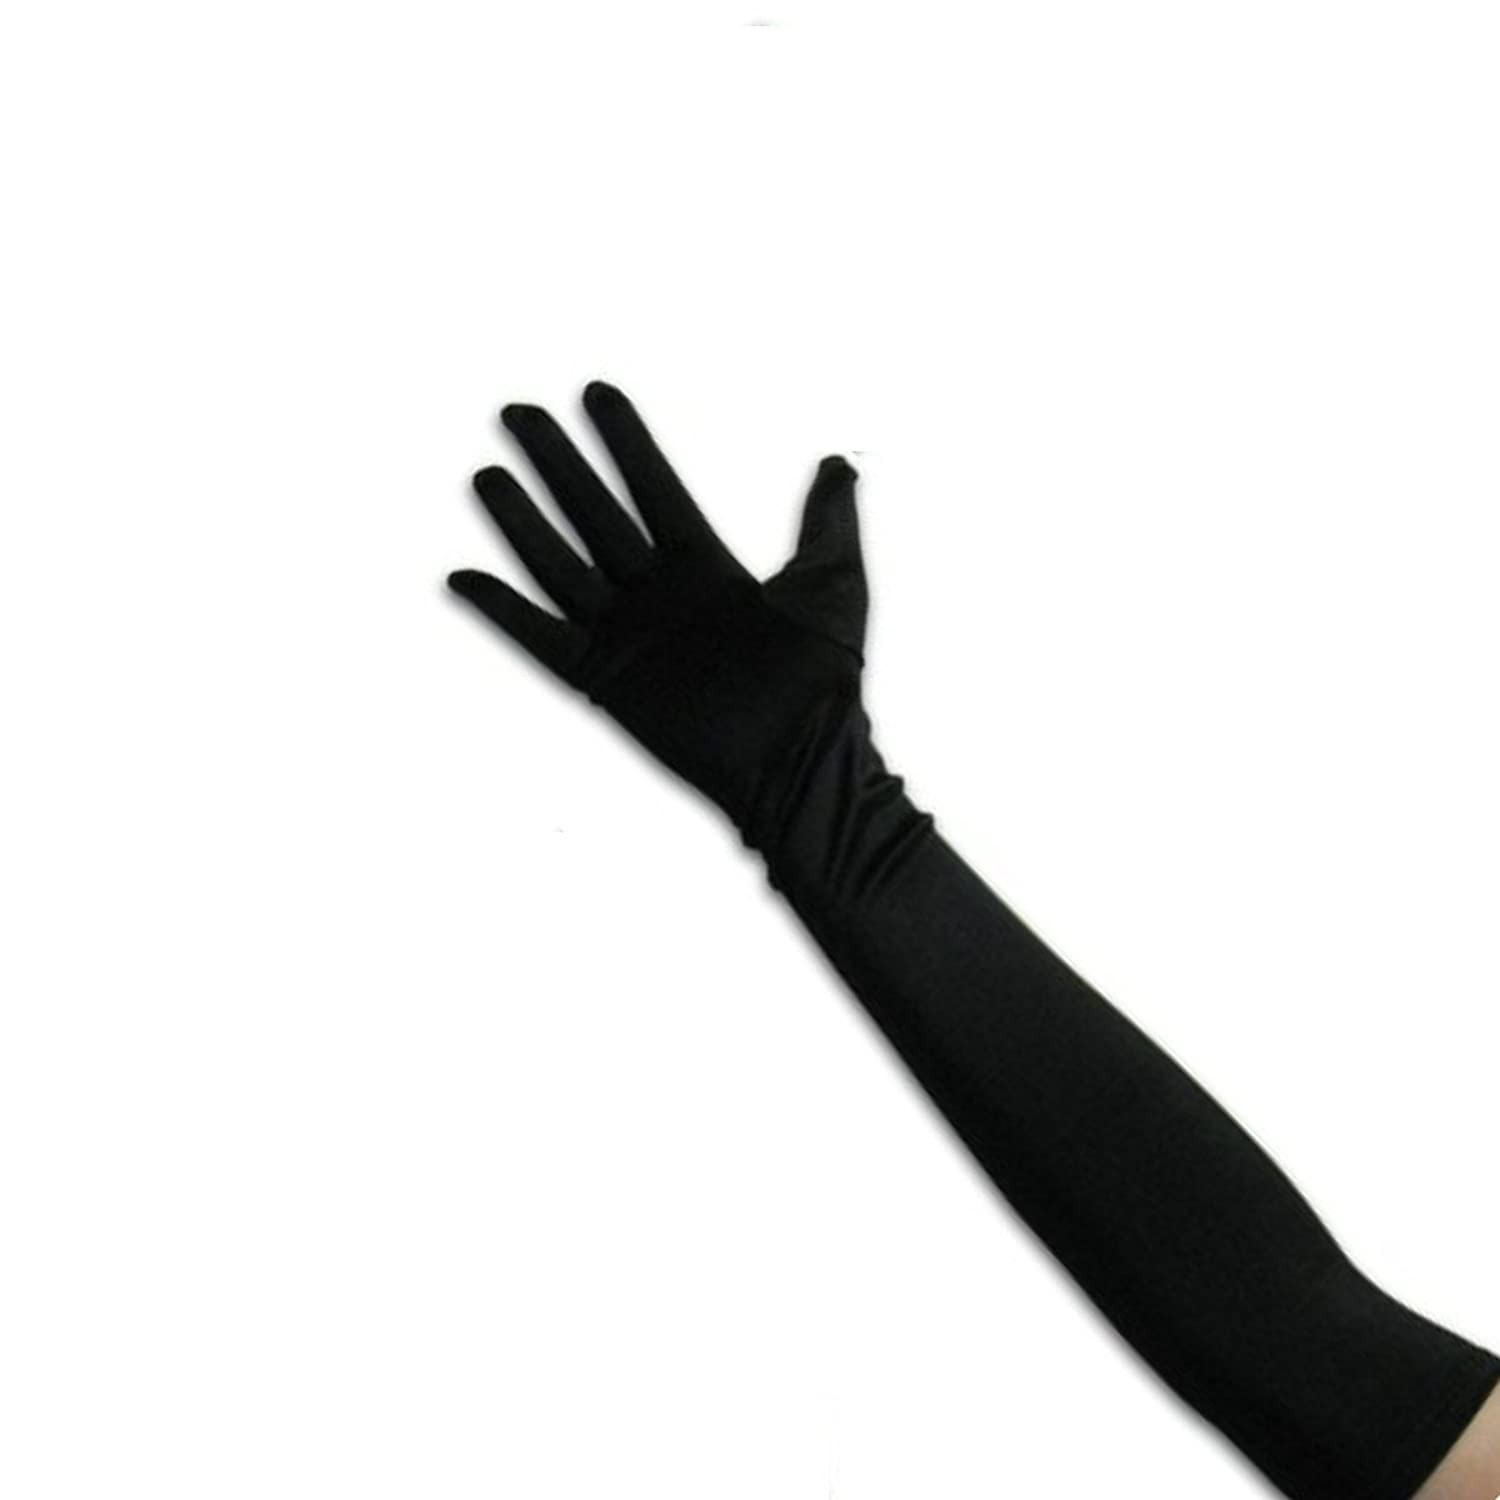 1920s Accessories | Great Gatsby Accessories Guide Tapp Collections™ Classic Adult Size Long Opera/Elbow/Wrist Length Satin Gloves $10.99 AT vintagedancer.com